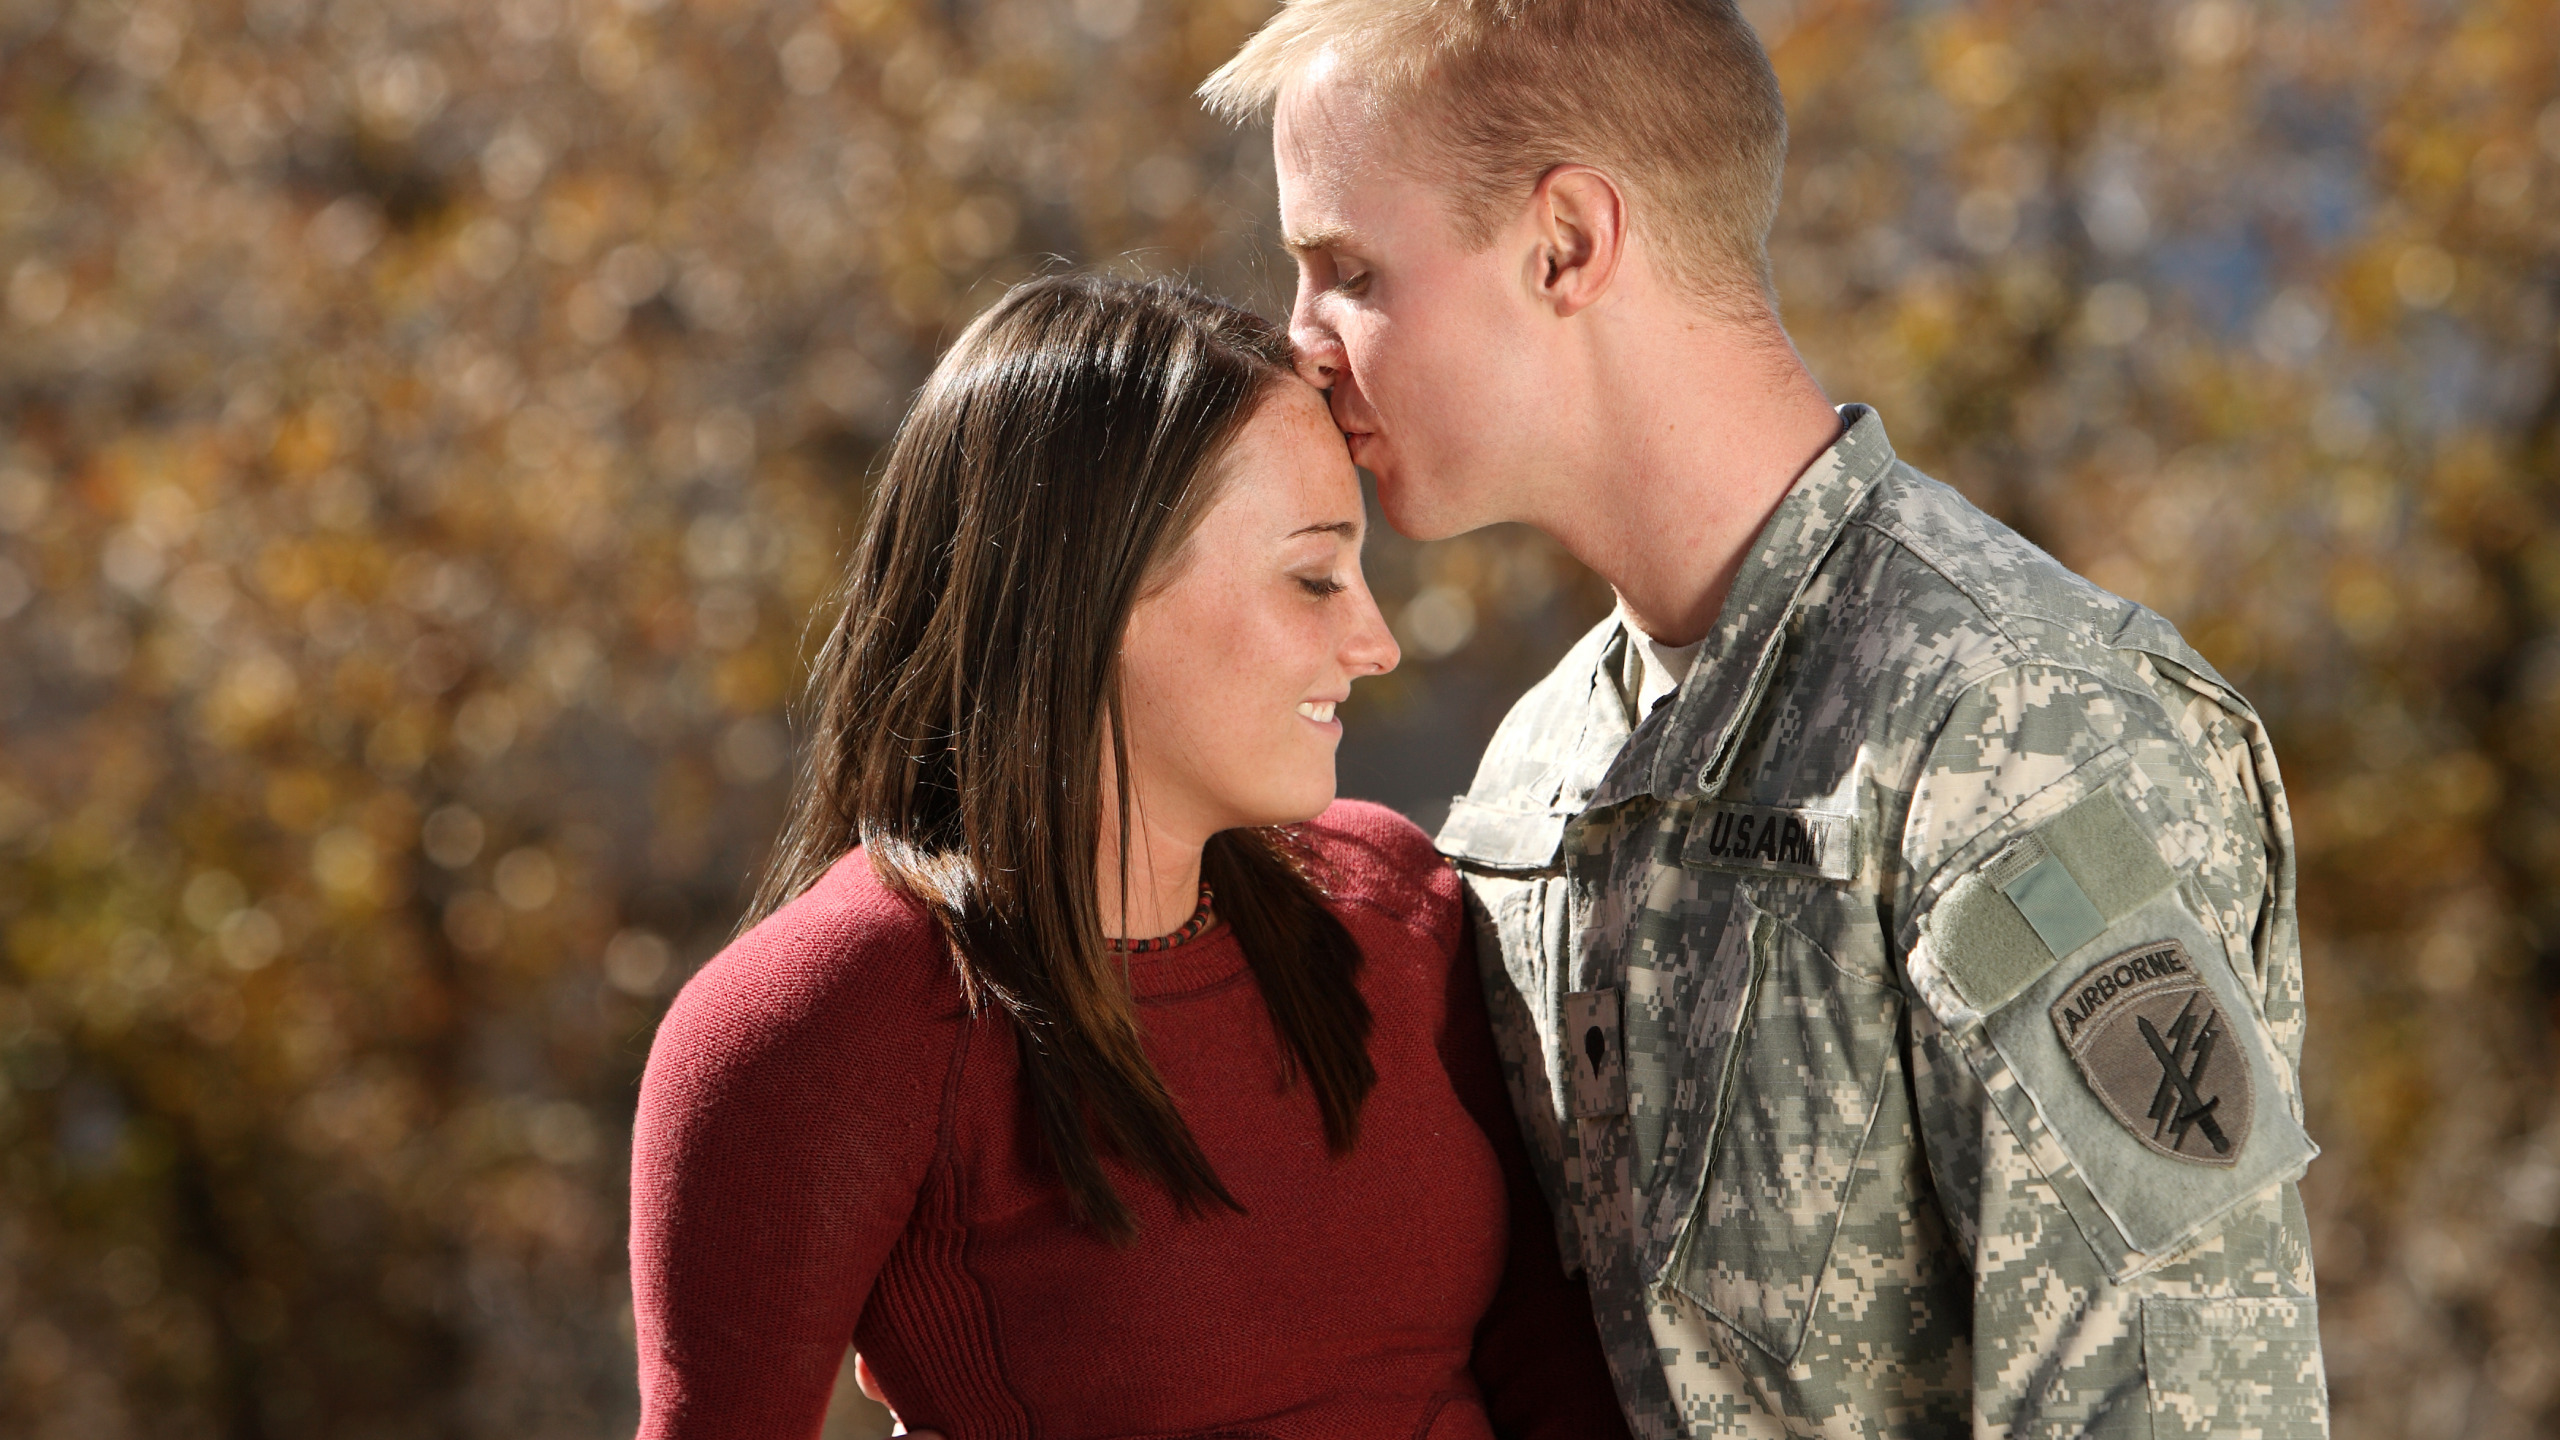 Dating soldiers free